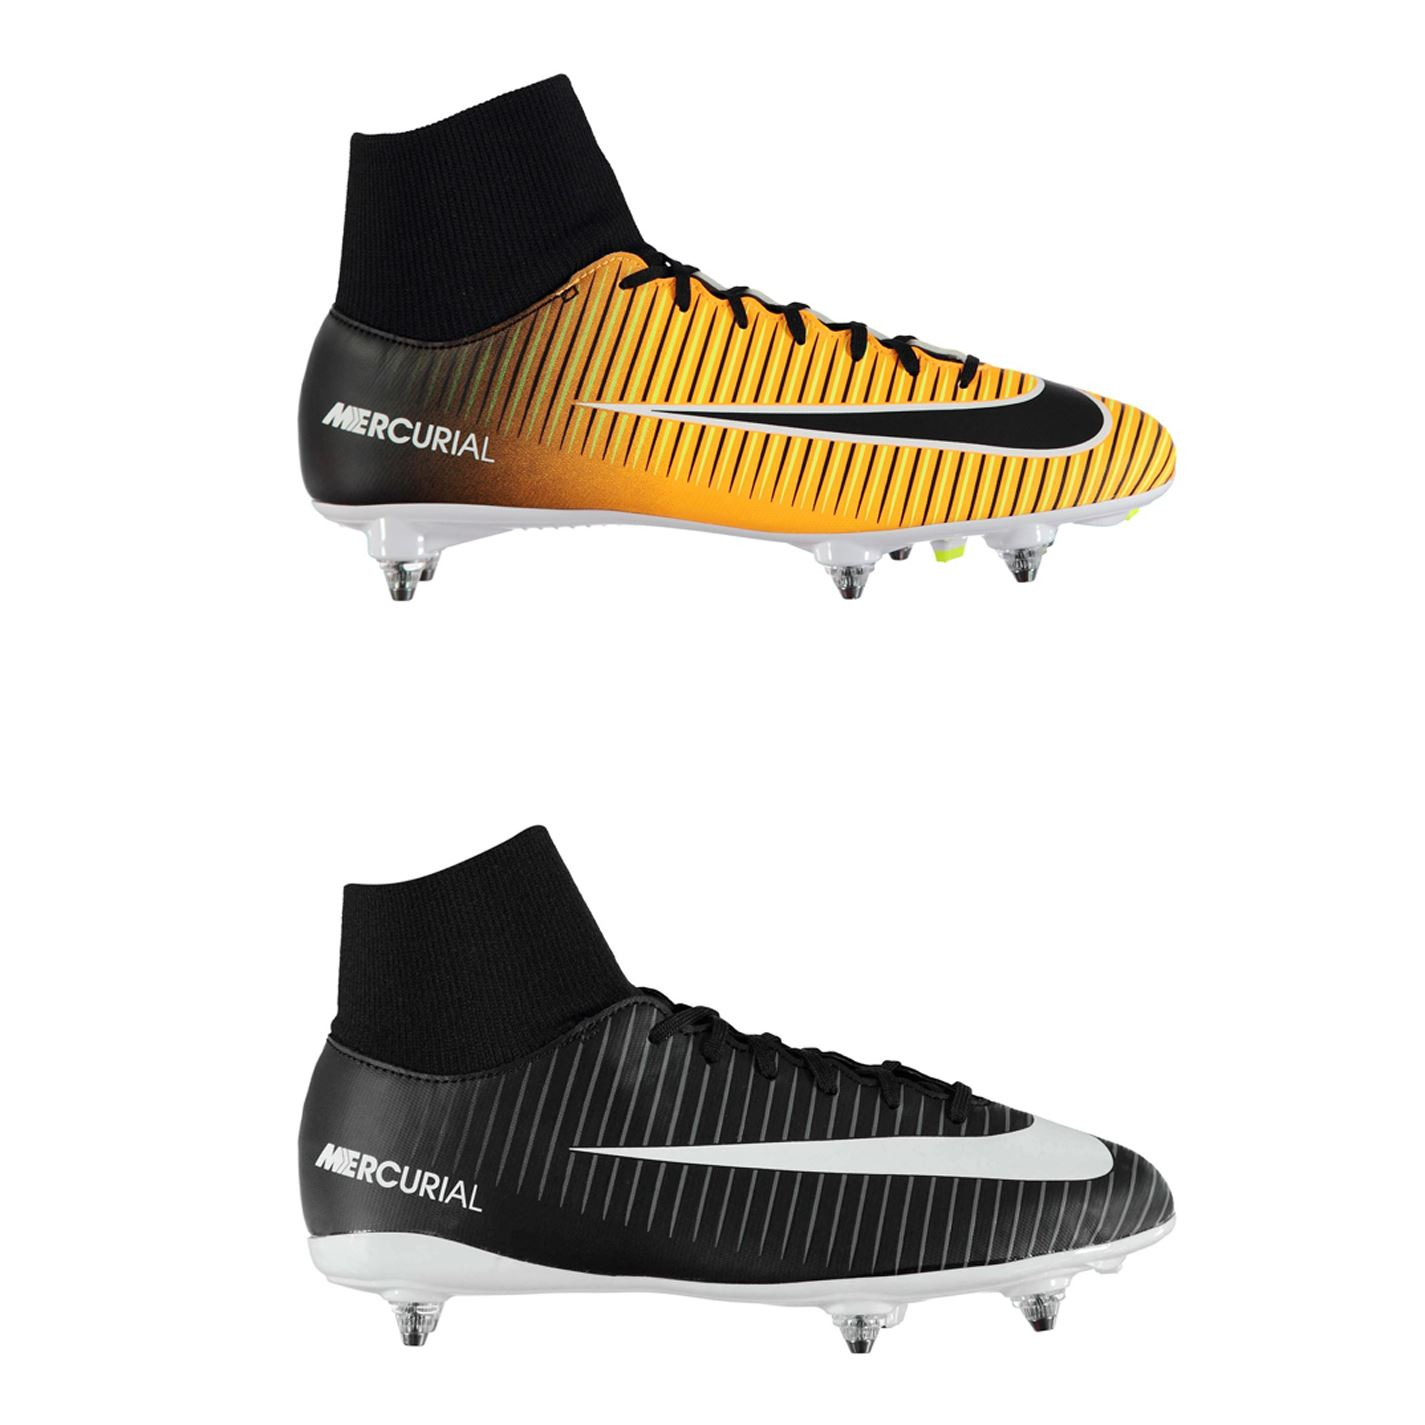 comprare on line online in vendita San Francisco Details about Nike Mercurial Victory Dynamic Fit SG Football Boots Juniors  Soccer Shoes Cleats